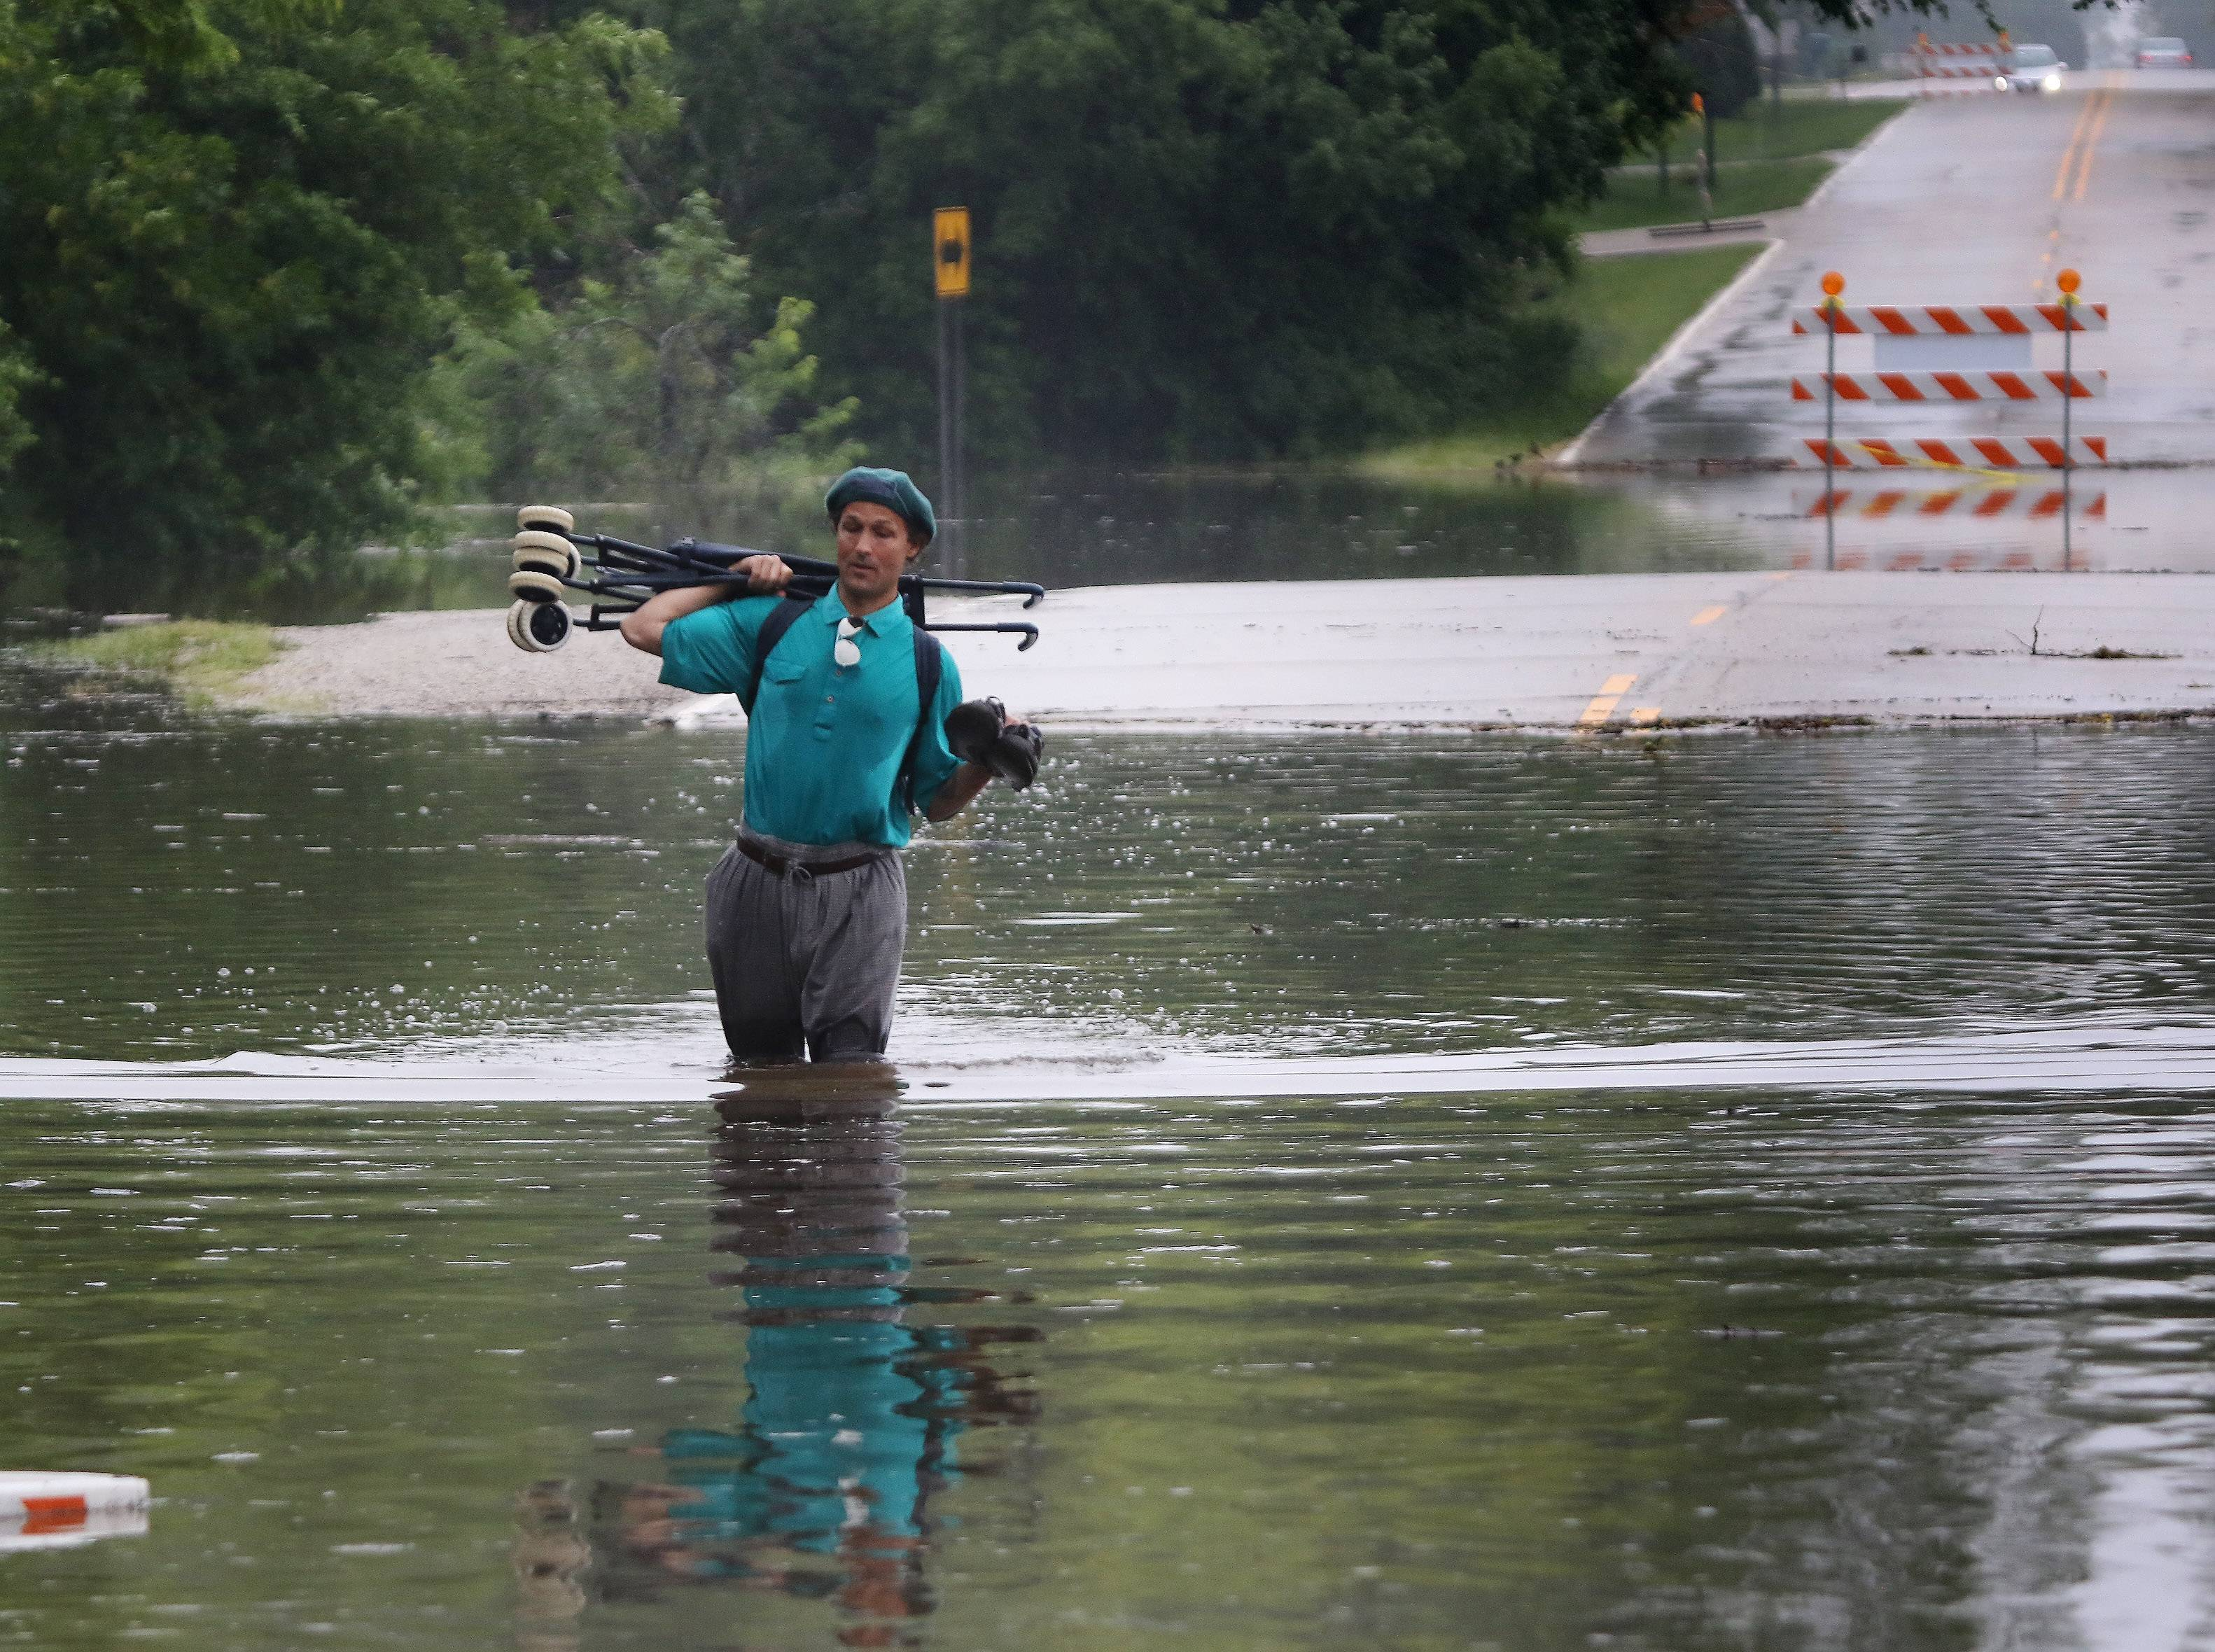 Prospect Heights resident Jonathan Bordner walks in the floodwaters on Hillside Avenue near Willow Road in Prospect Heights on Sunday. Heavy thunderstorms over the weekend have caused some area flooding.